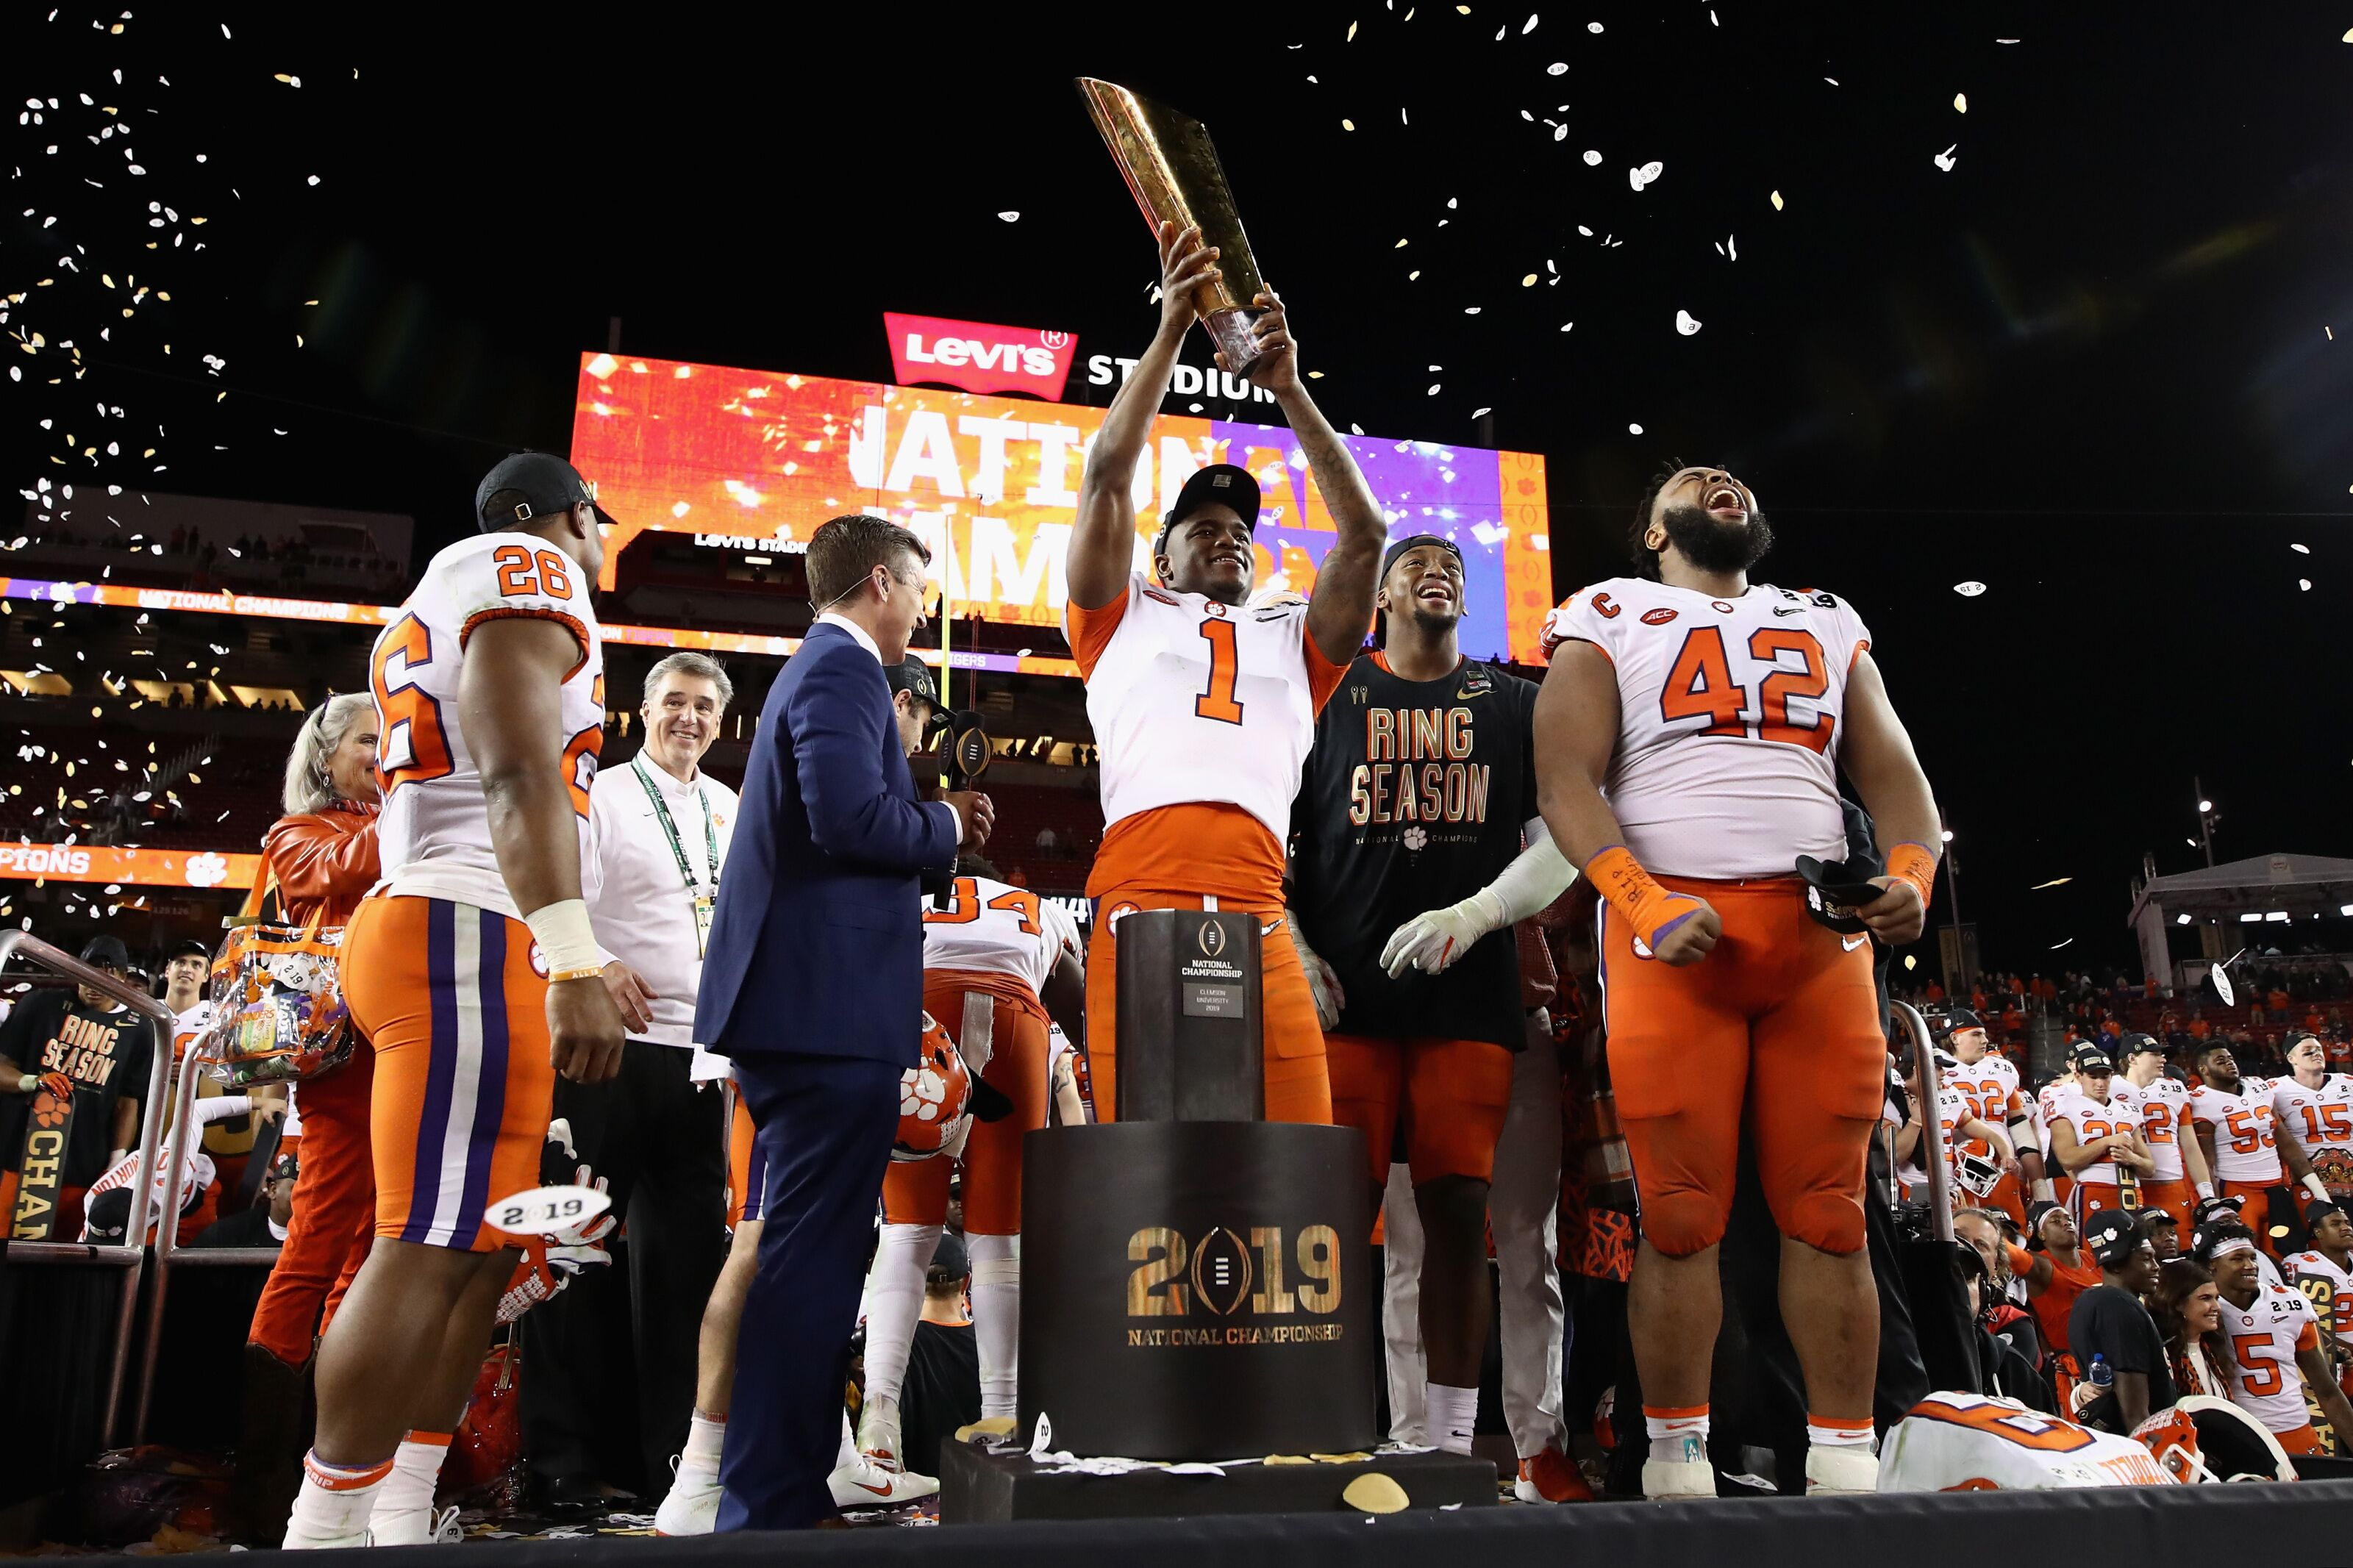 Clemson Football: National Media finally calling out Bama for excuse-making